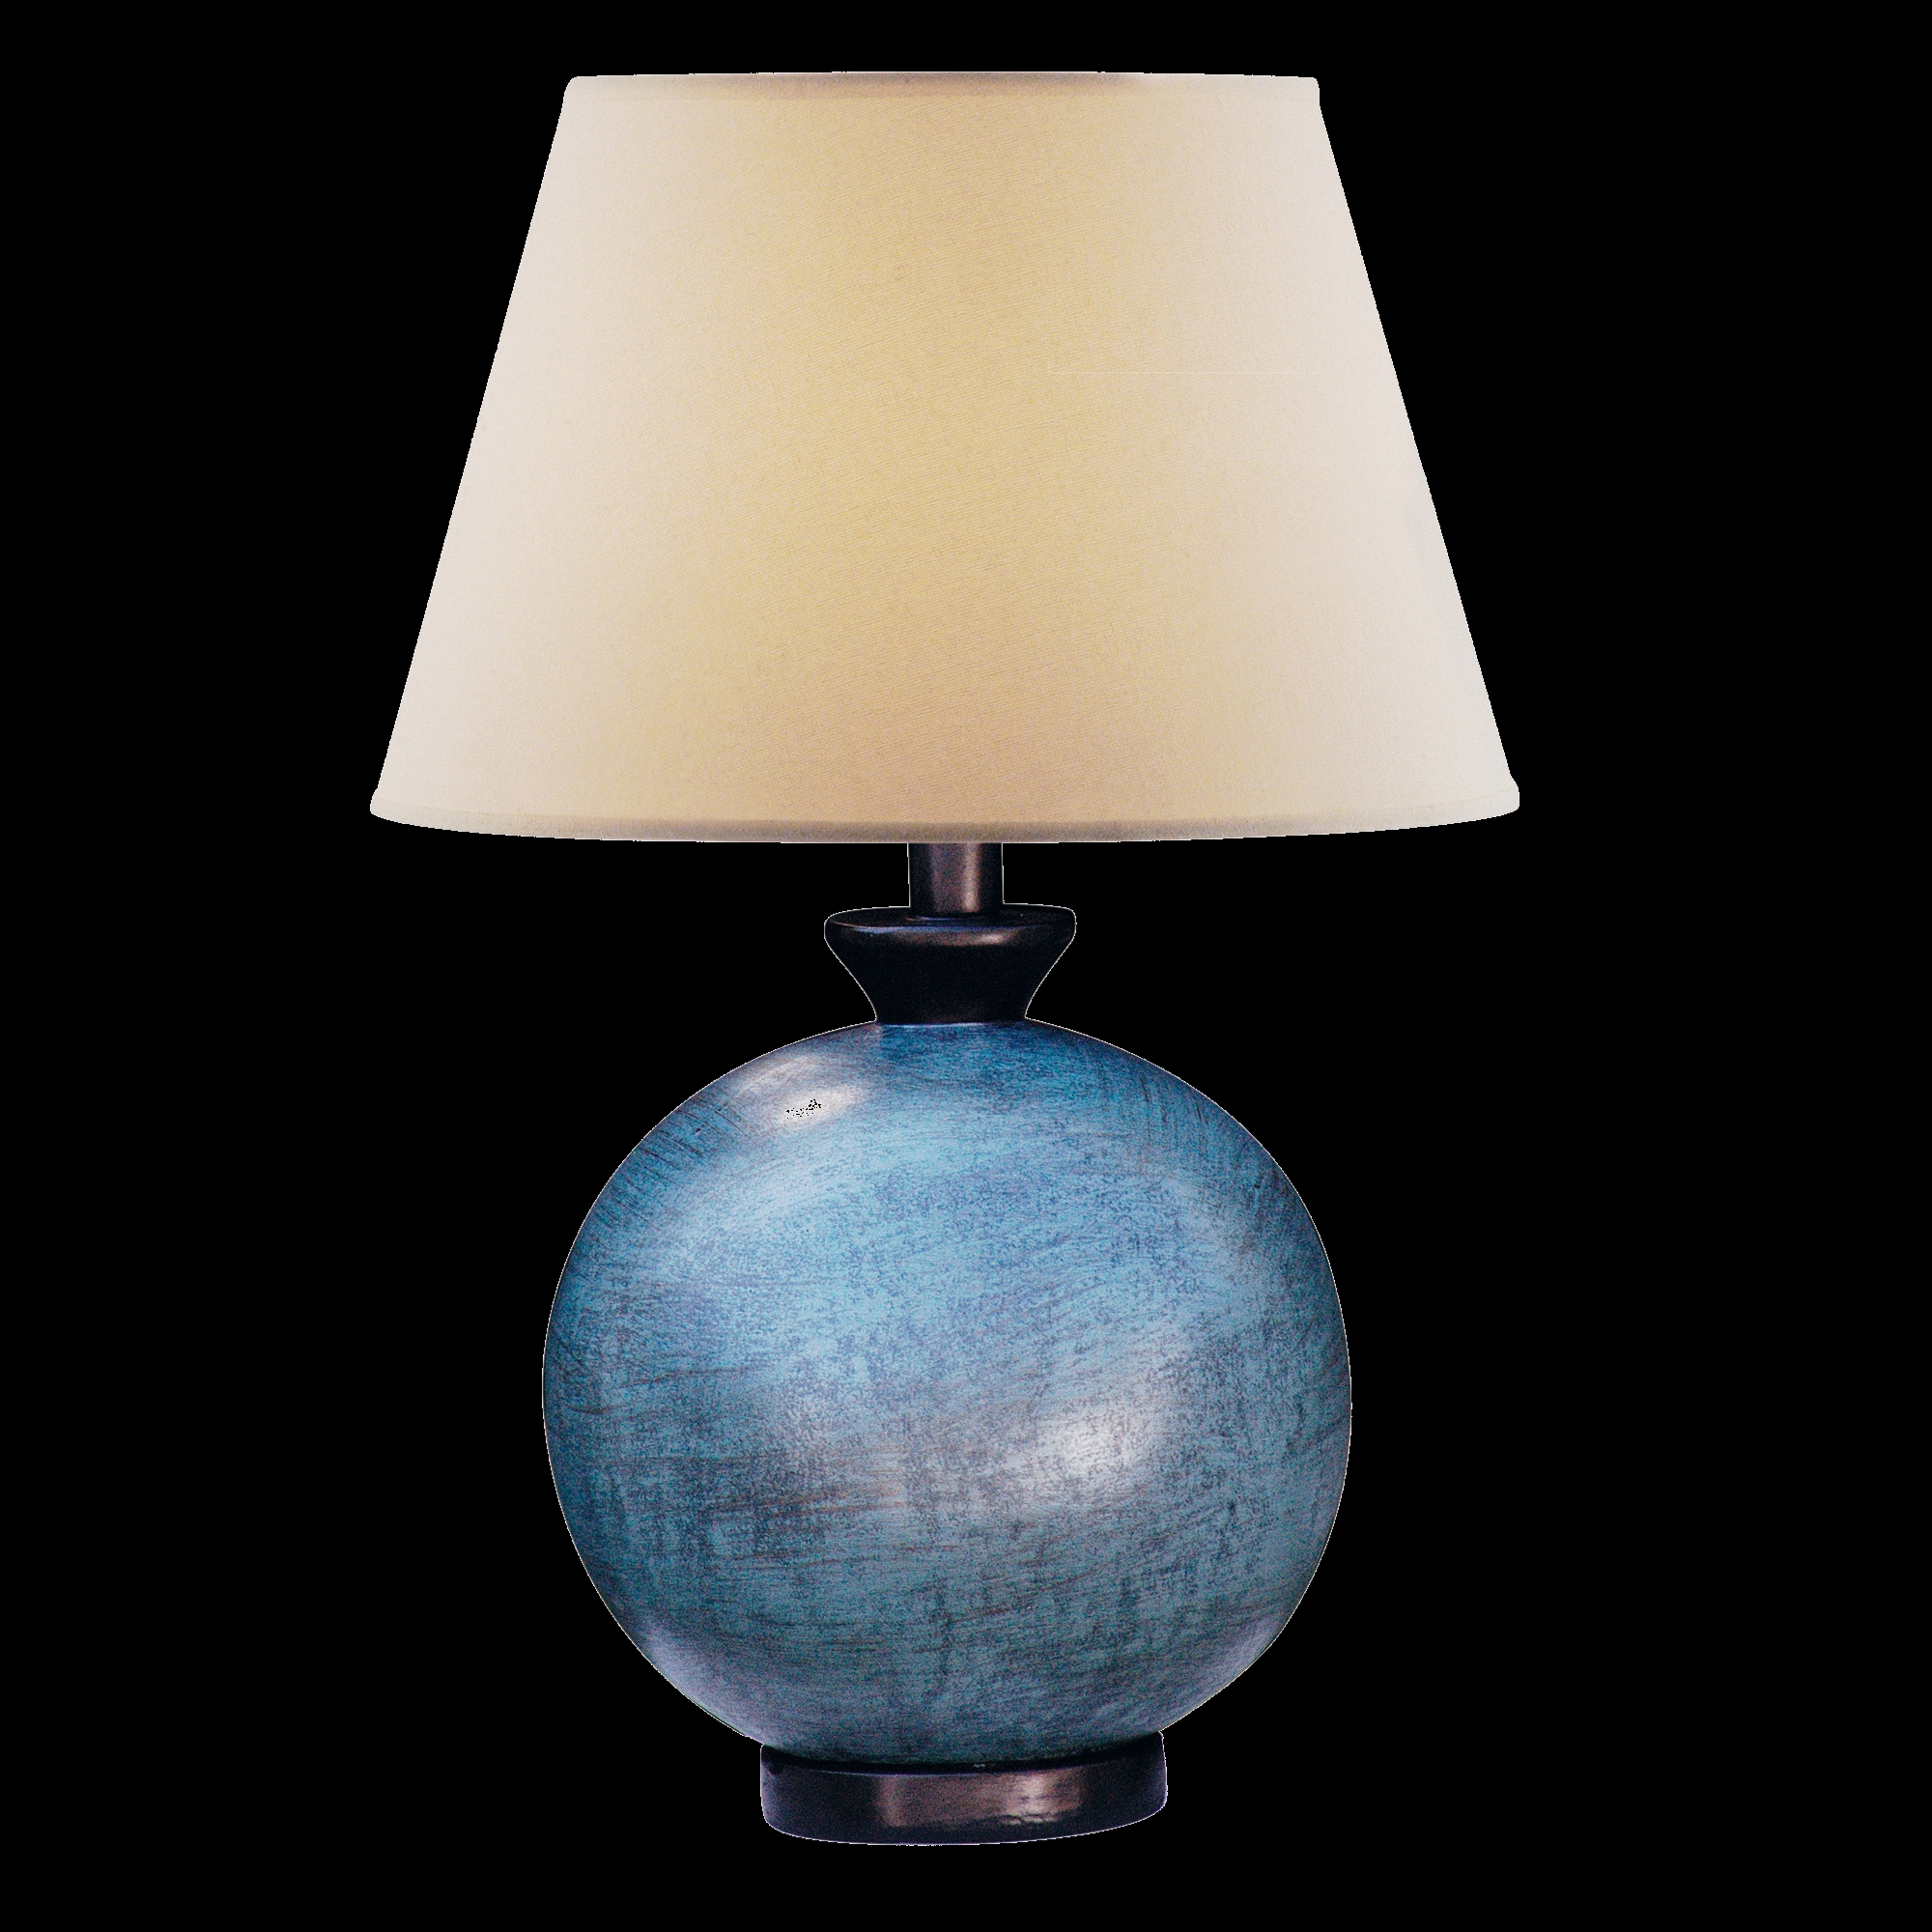 Anthony California Table Lamp With Empire Shade H6397hb